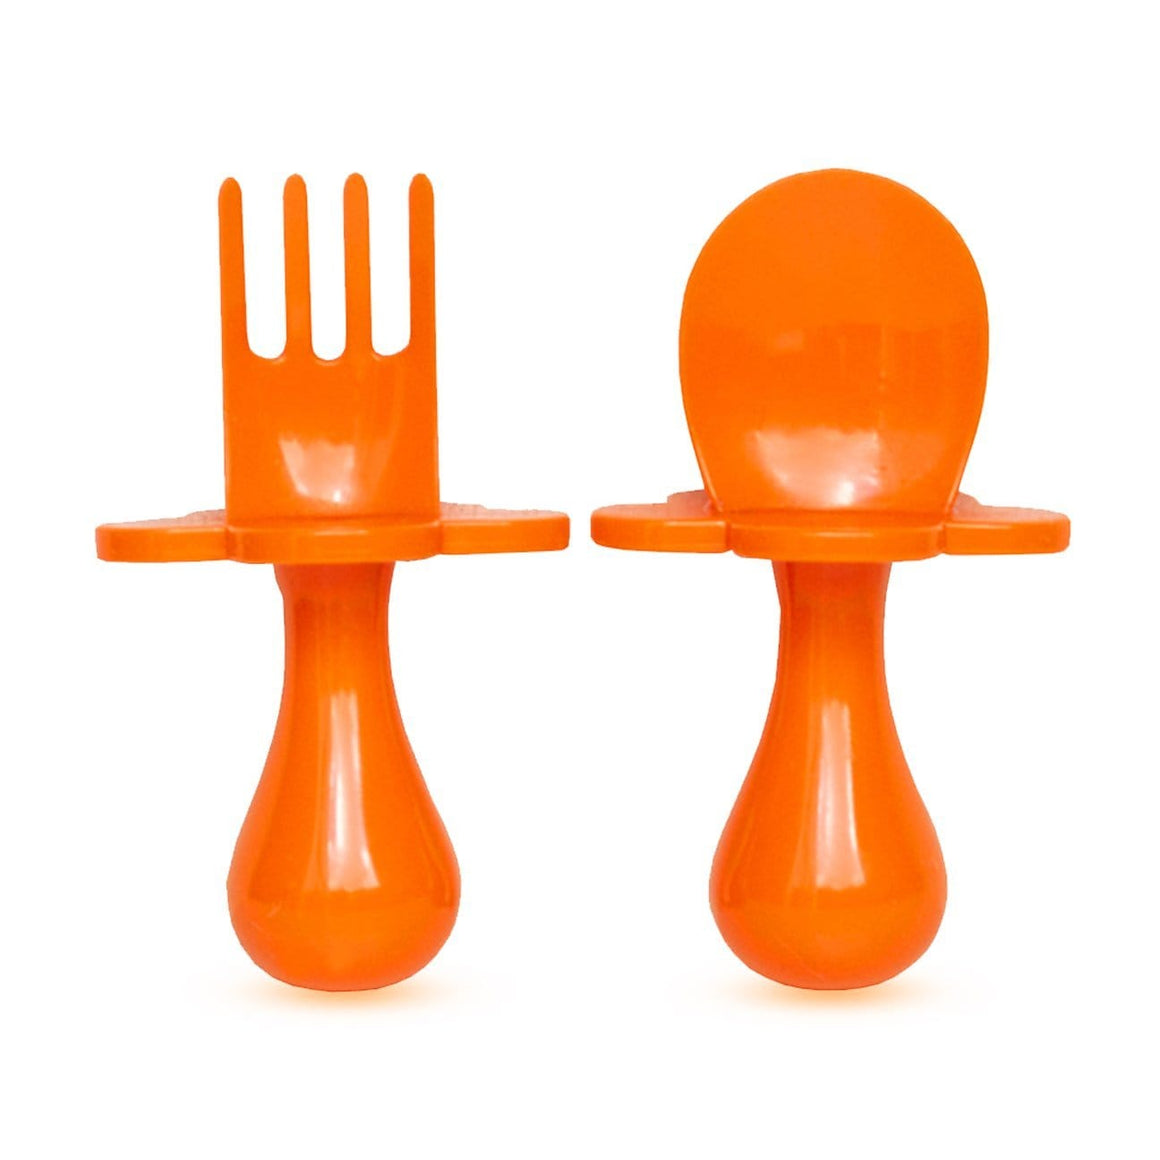 Grabease USA- Eating Utensils Set For Toddlers -Orange You Hungry 美國Grabease幼兒學習雲朵餐具-橙色